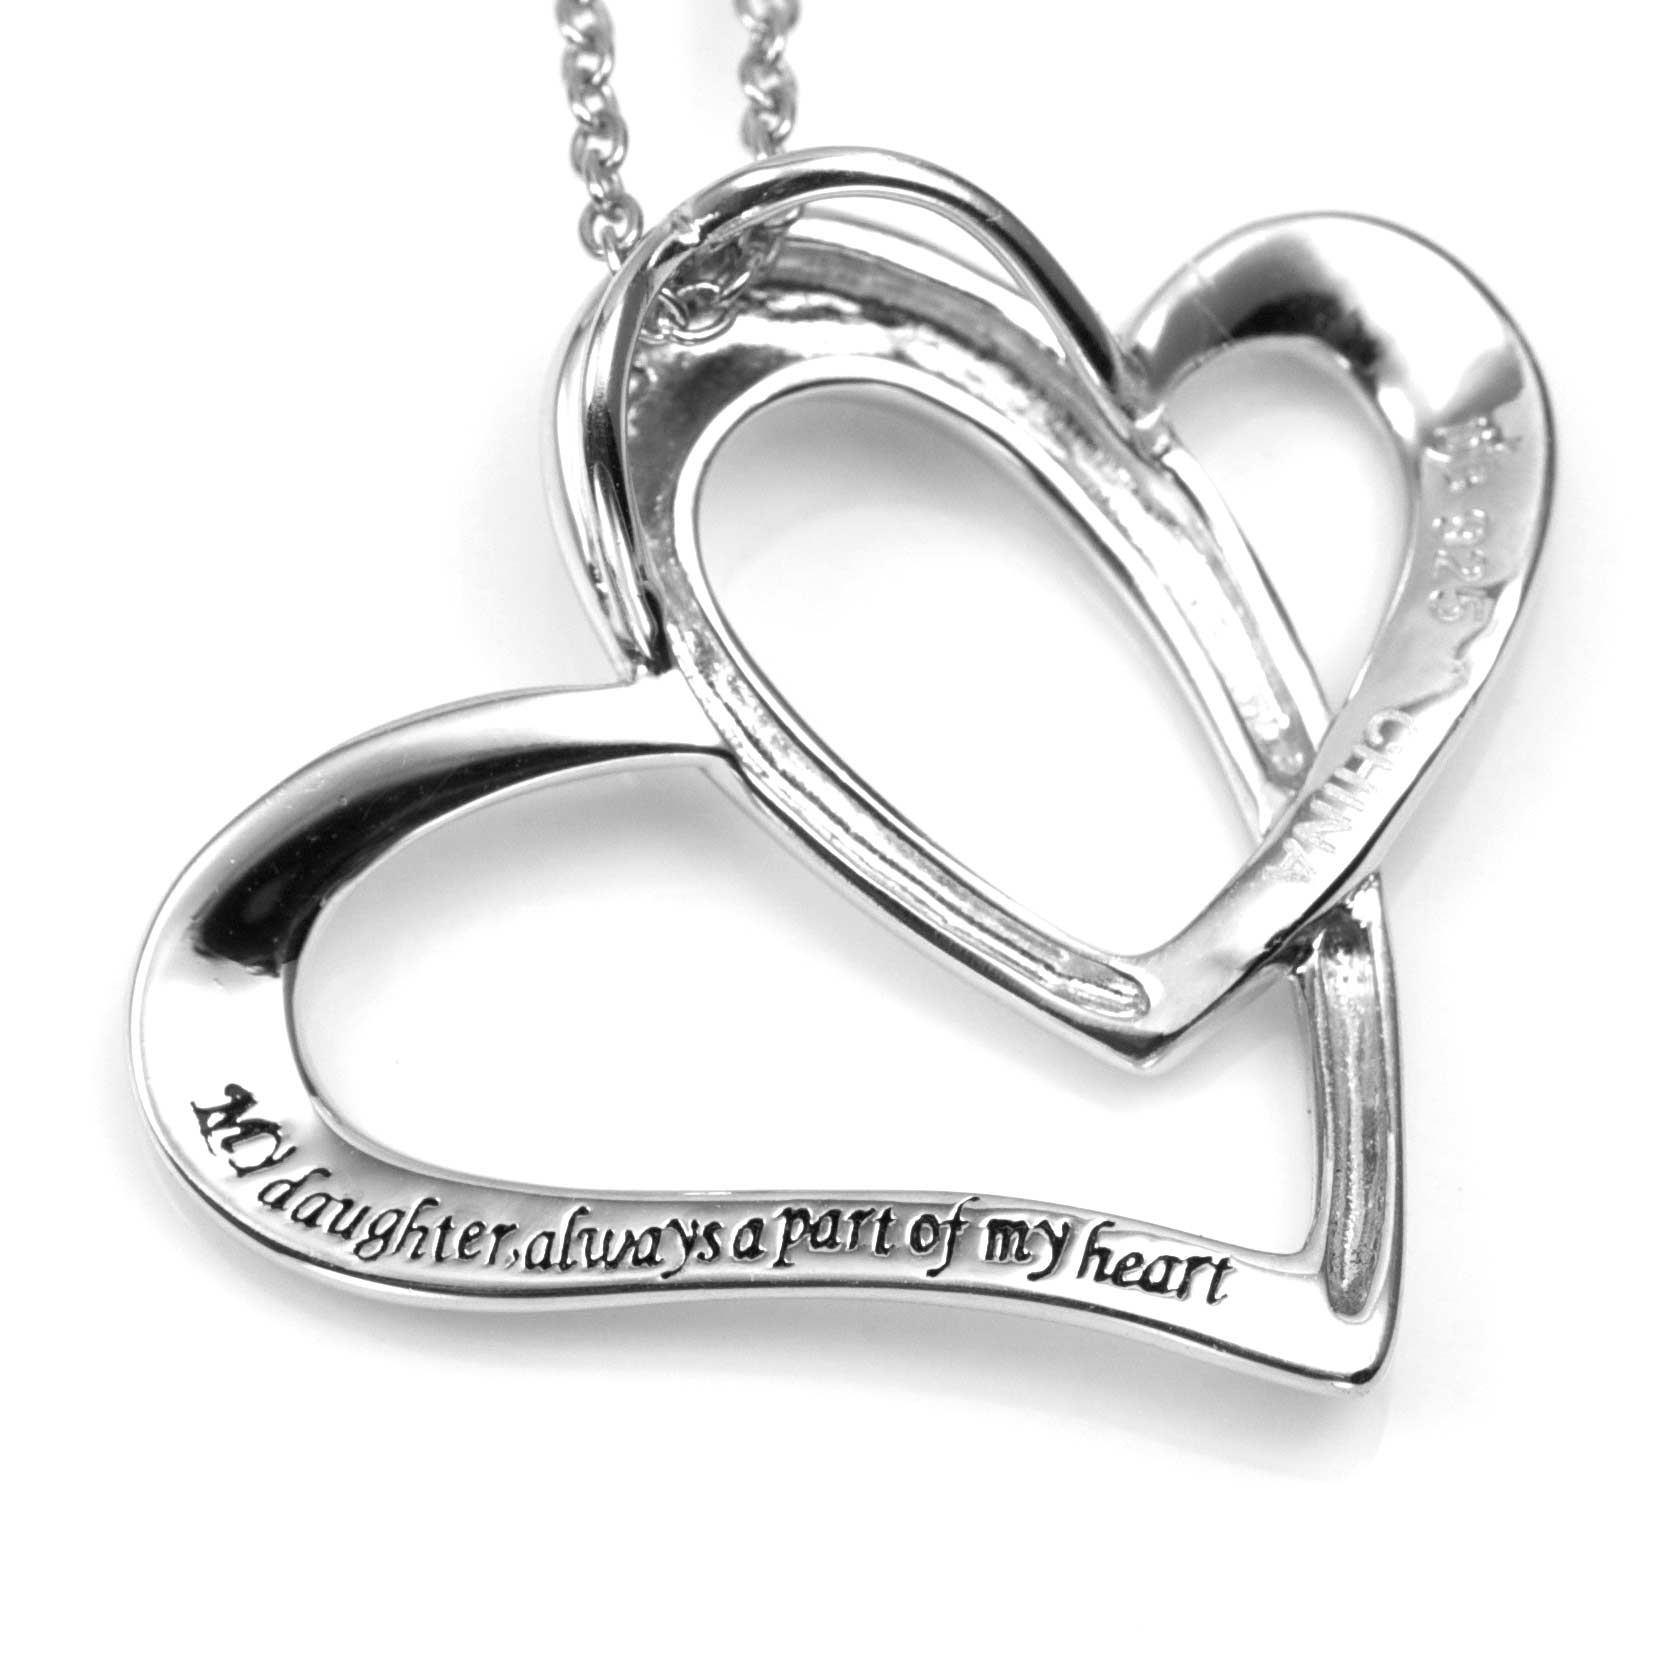 A Part of My Heart Personalized Sterling Silver Necklace inset 1